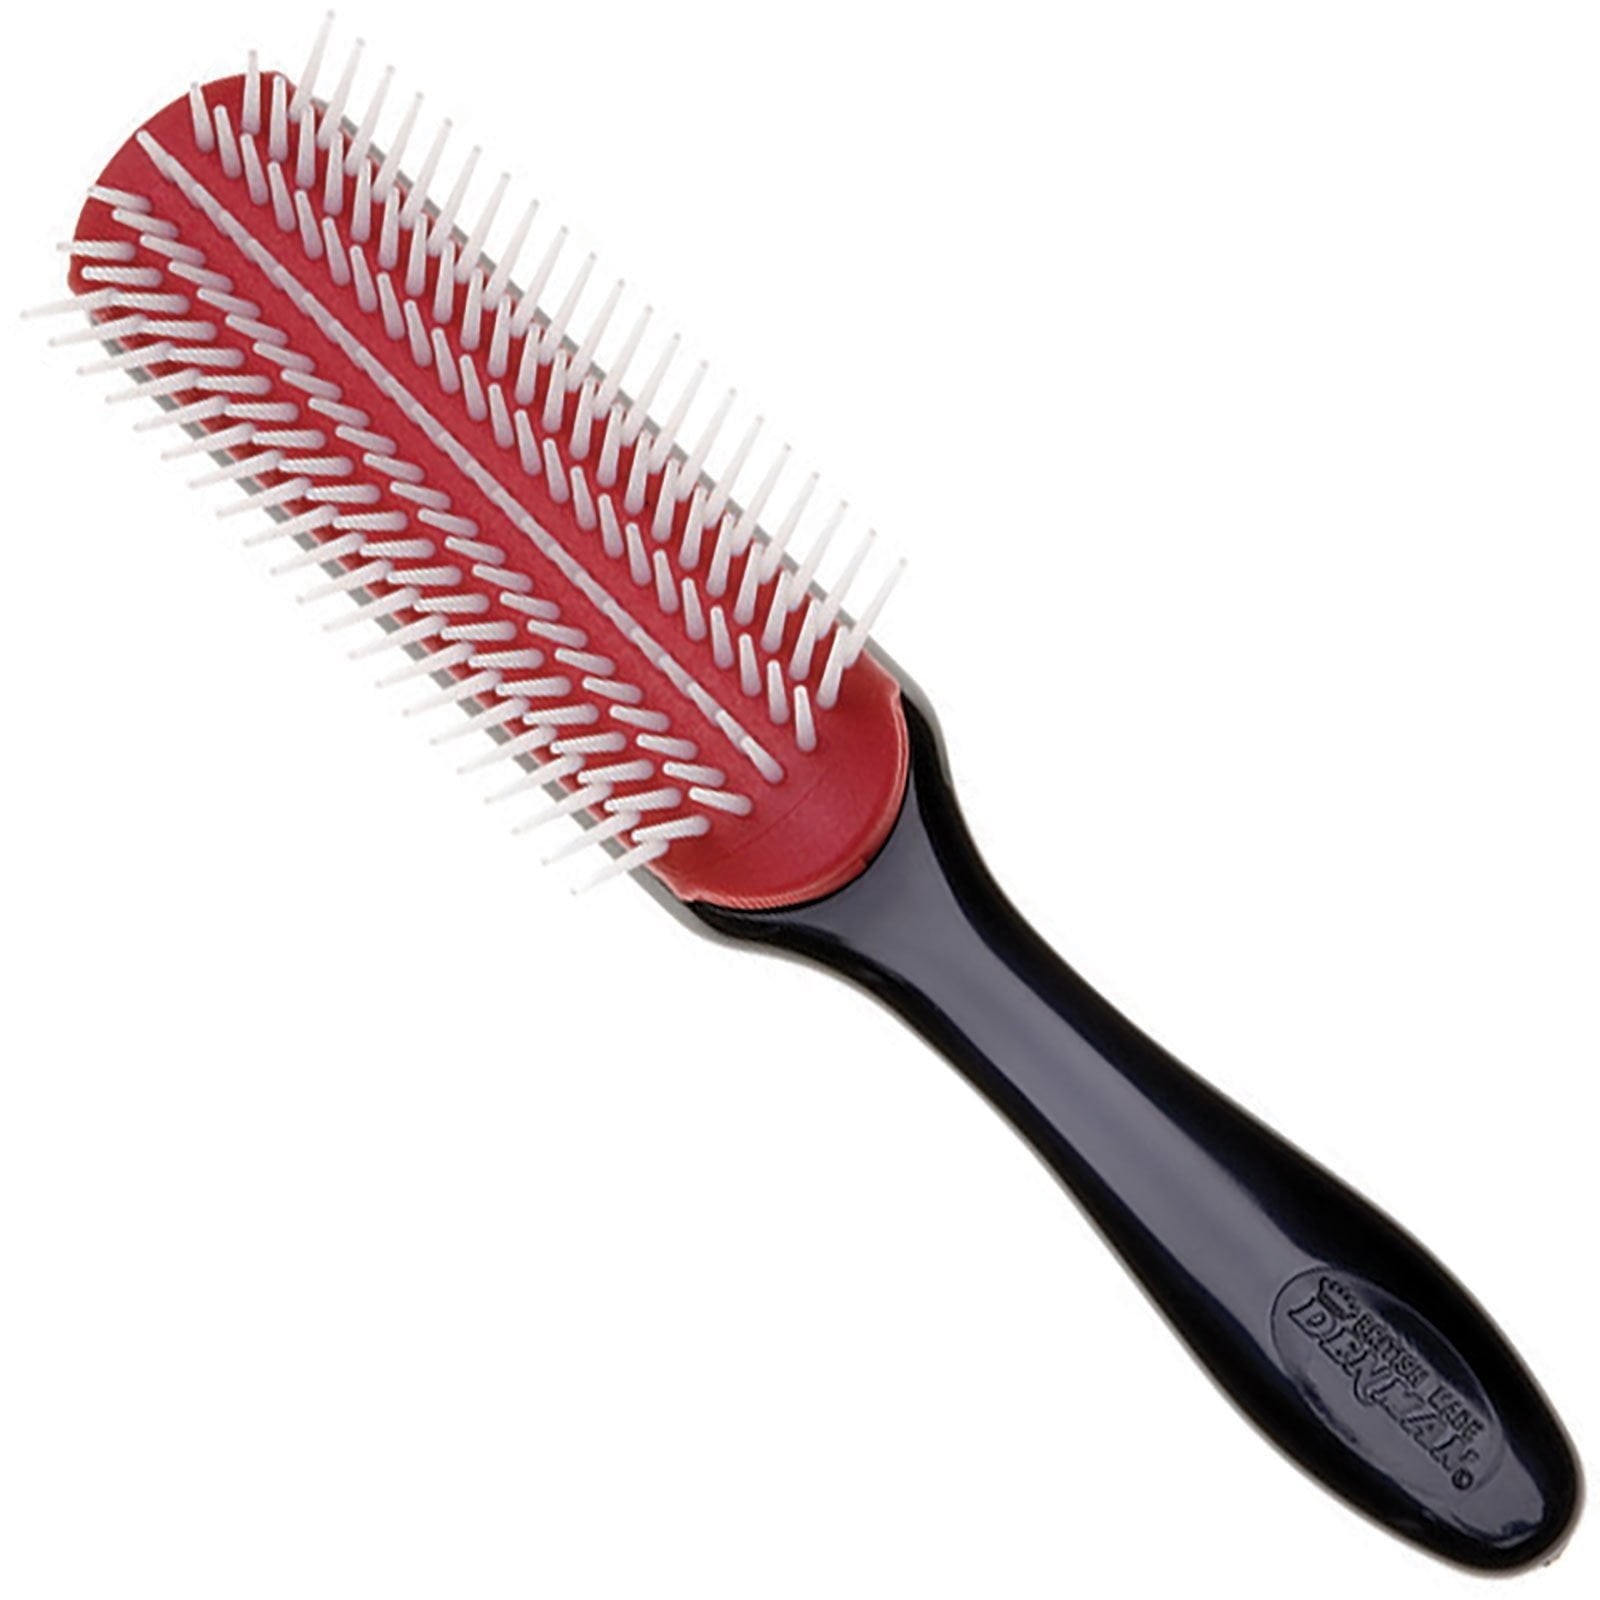 Denman - Medium 7 Row Styling Brush - Rood - D3